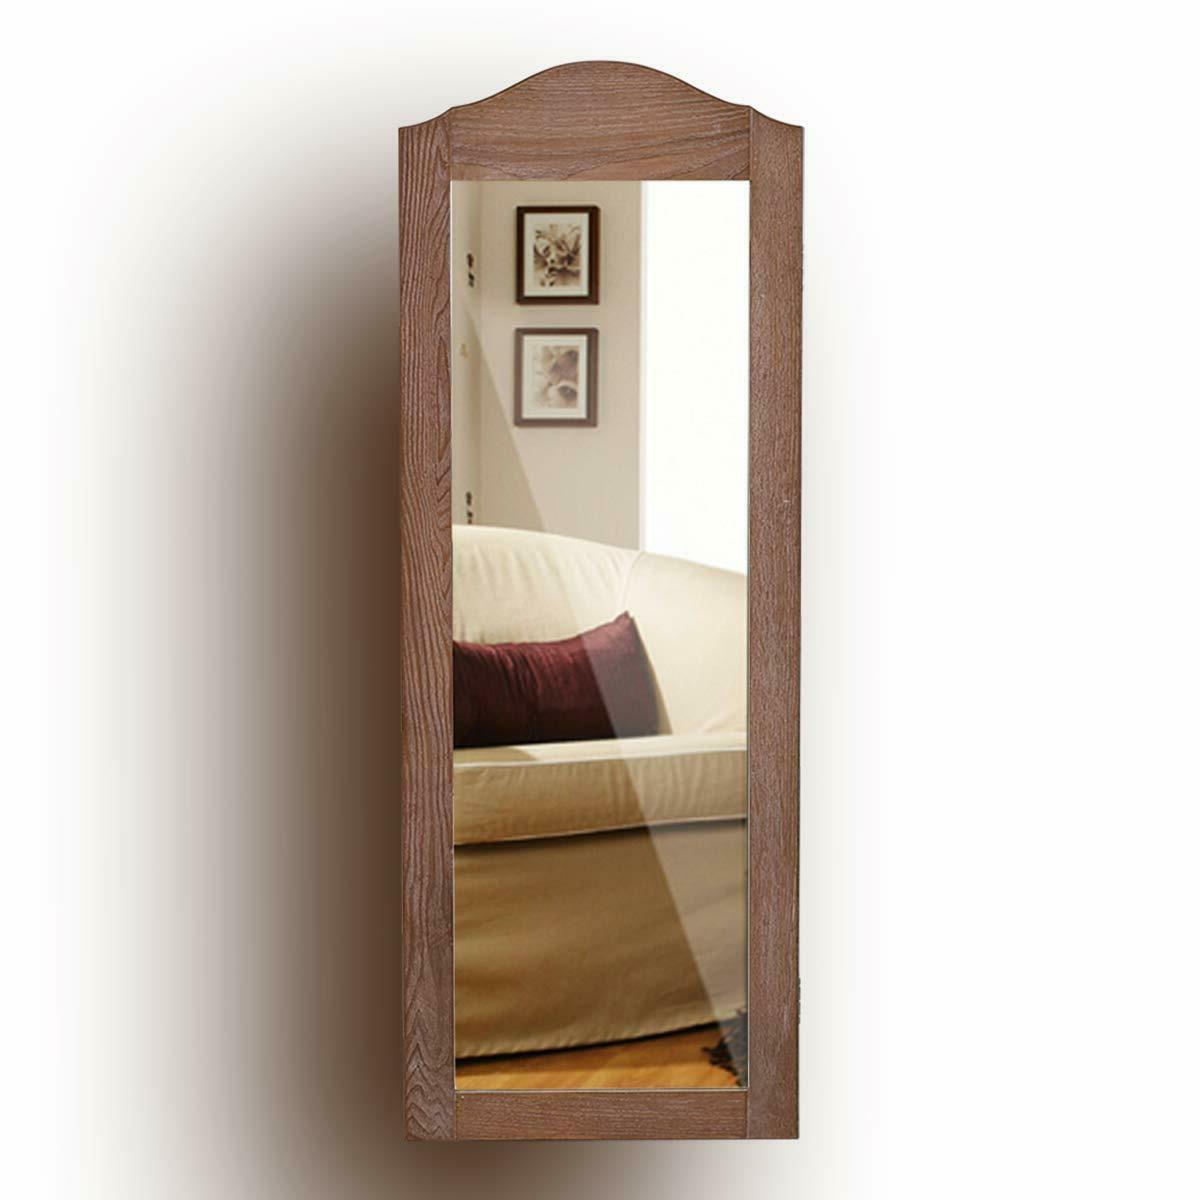 New Jewelry Armoire Cabinet Wall Mounted with Mirror Full Le